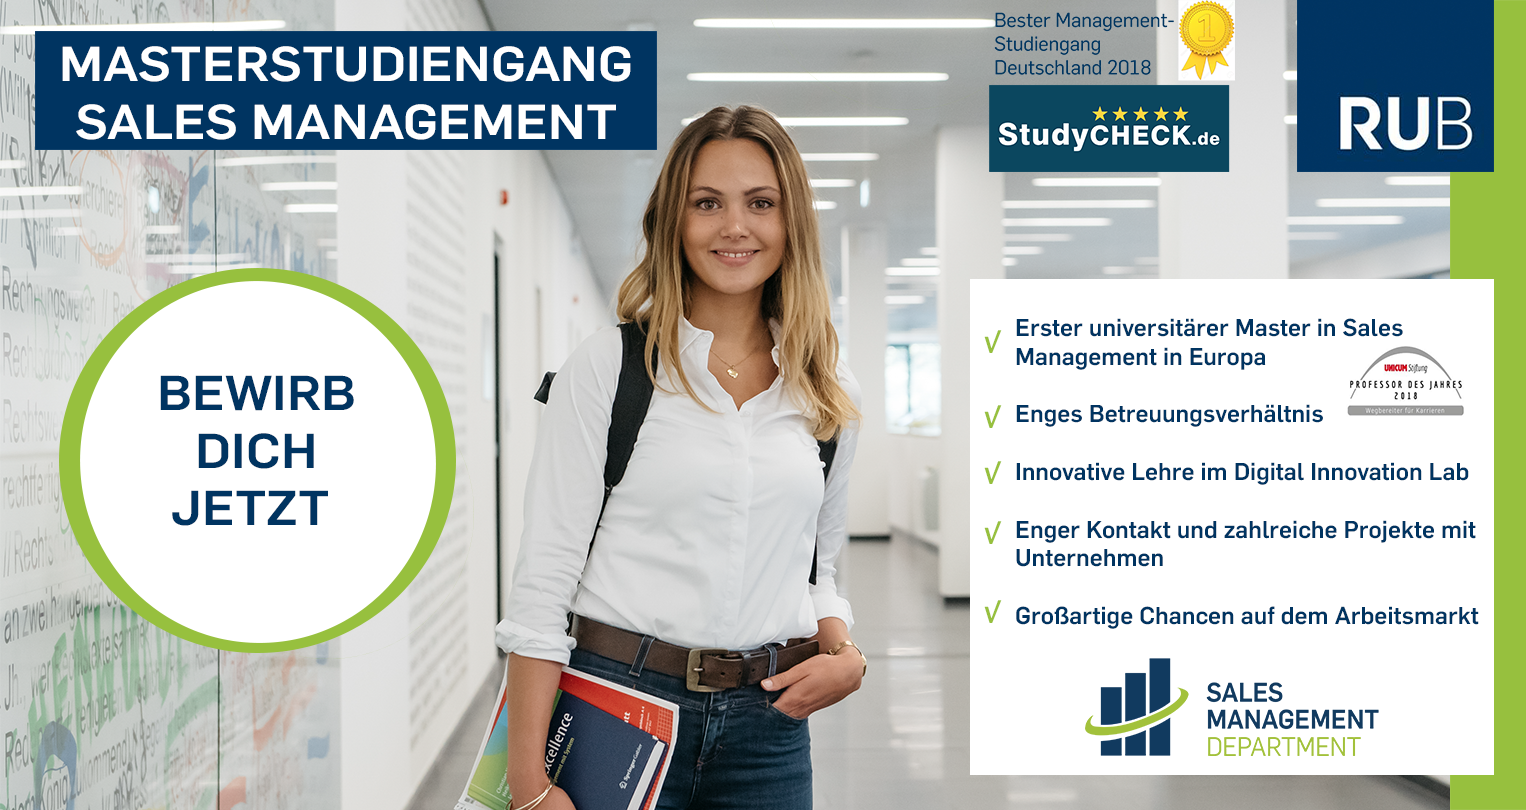 Masterstudiengang Sales Management